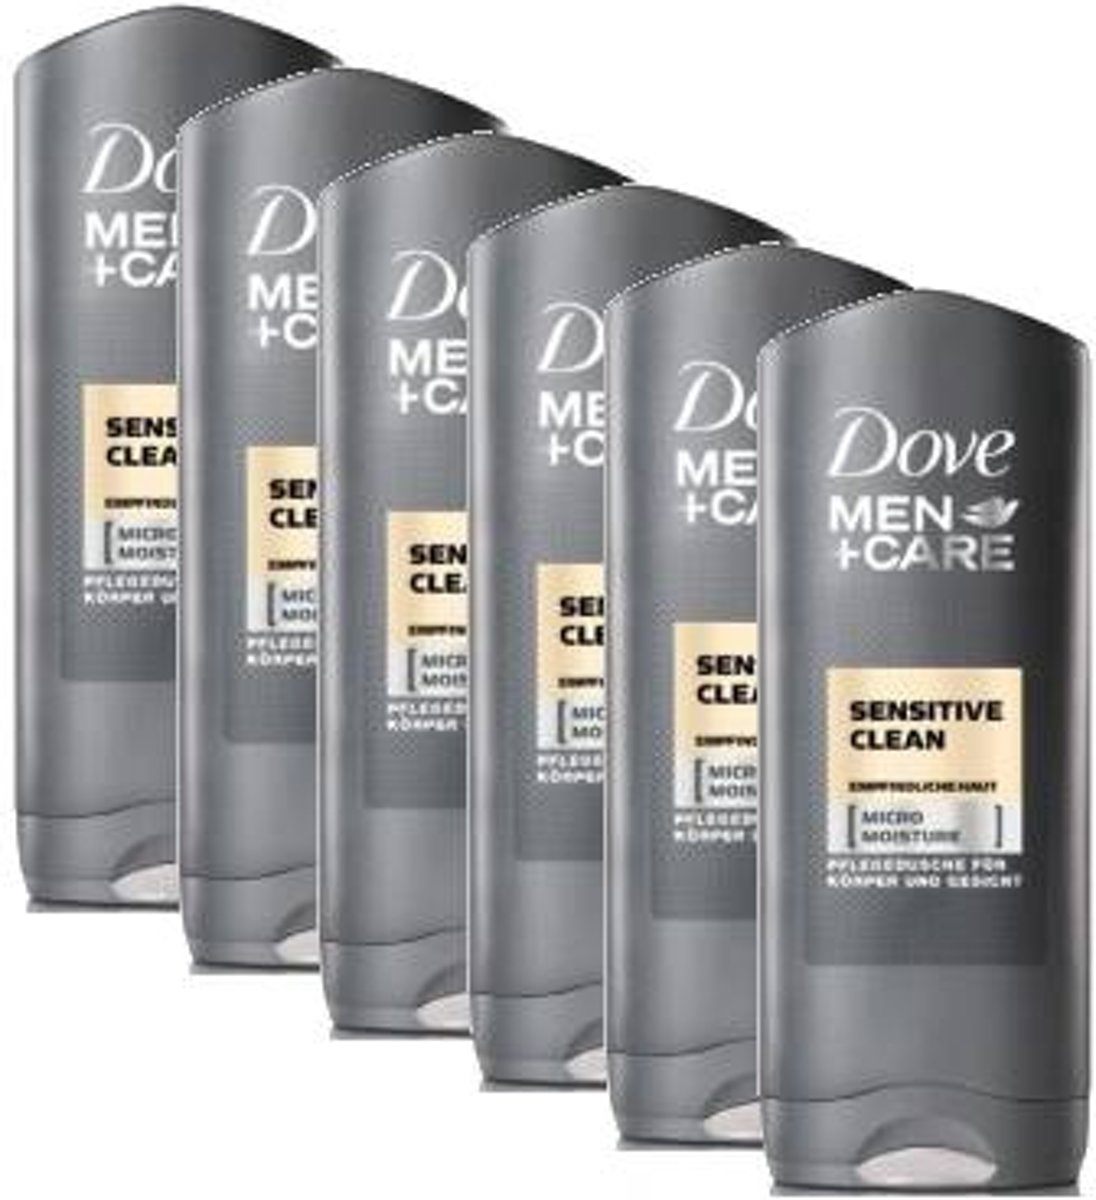 6x 250 ml Dove men + care sensitive clean -  douchegel